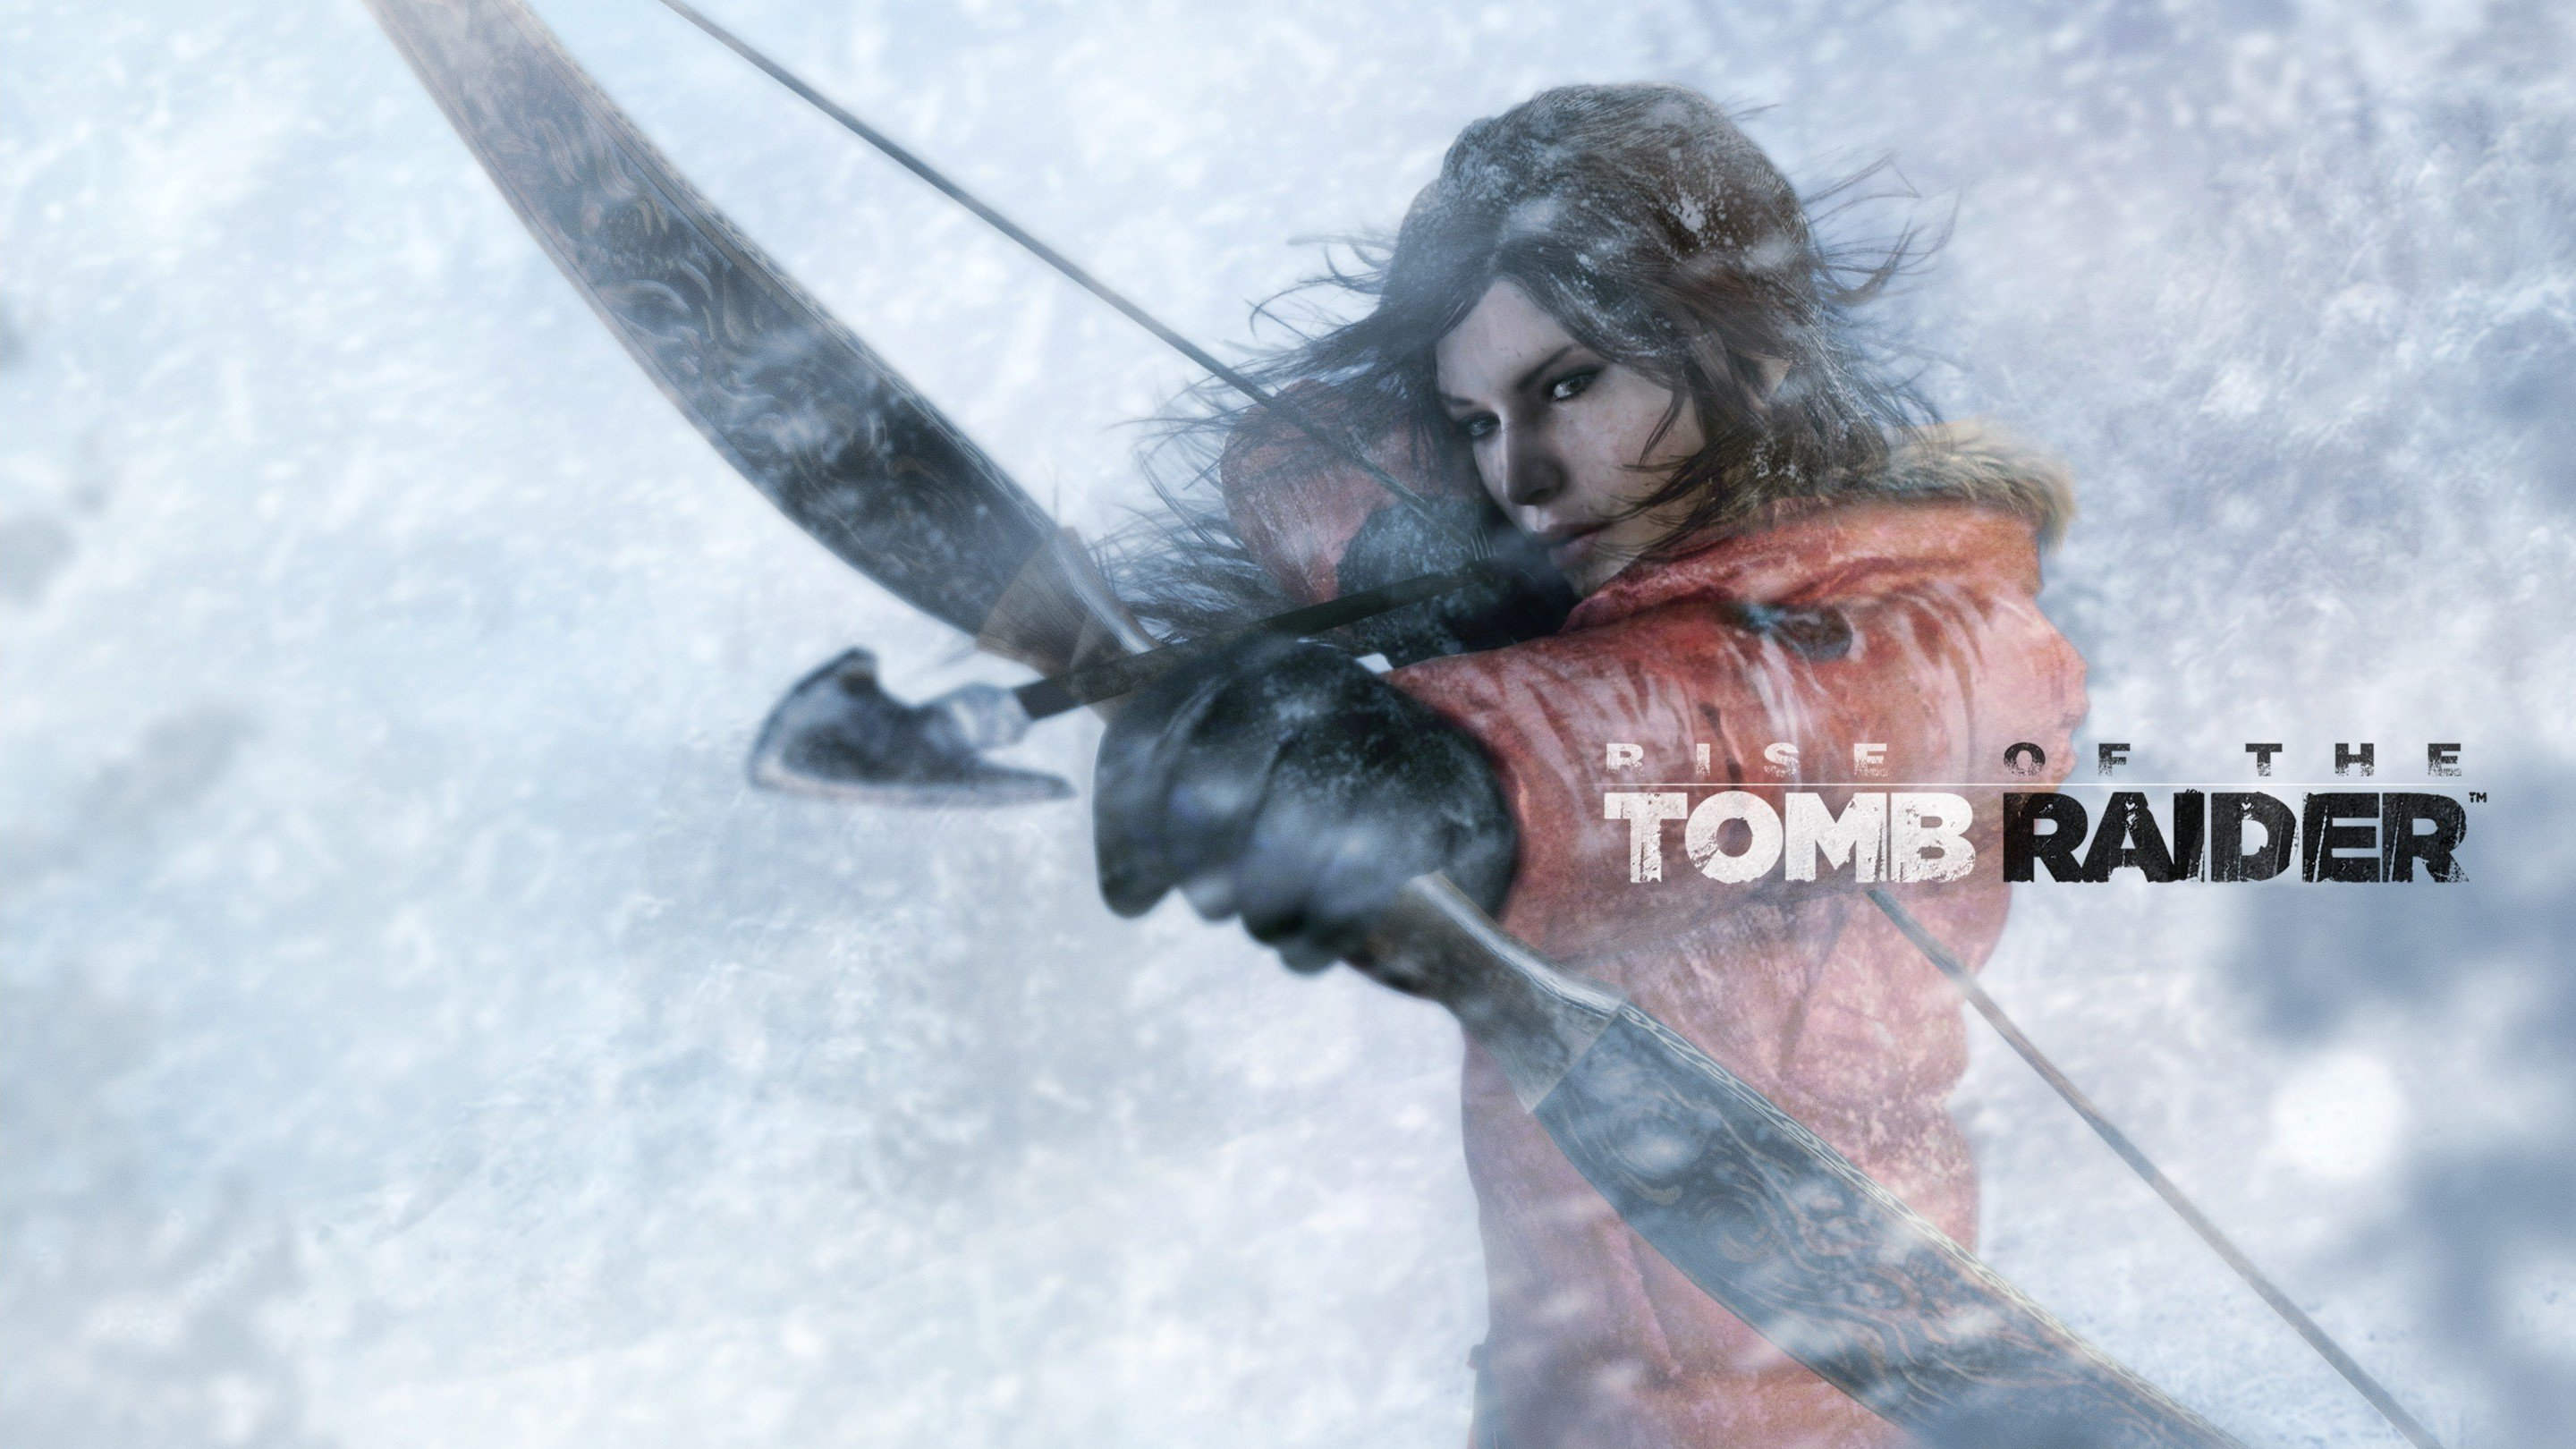 Rise of the Tomb Raider или да когда же этот медведь сдохнет? - Изображение 1